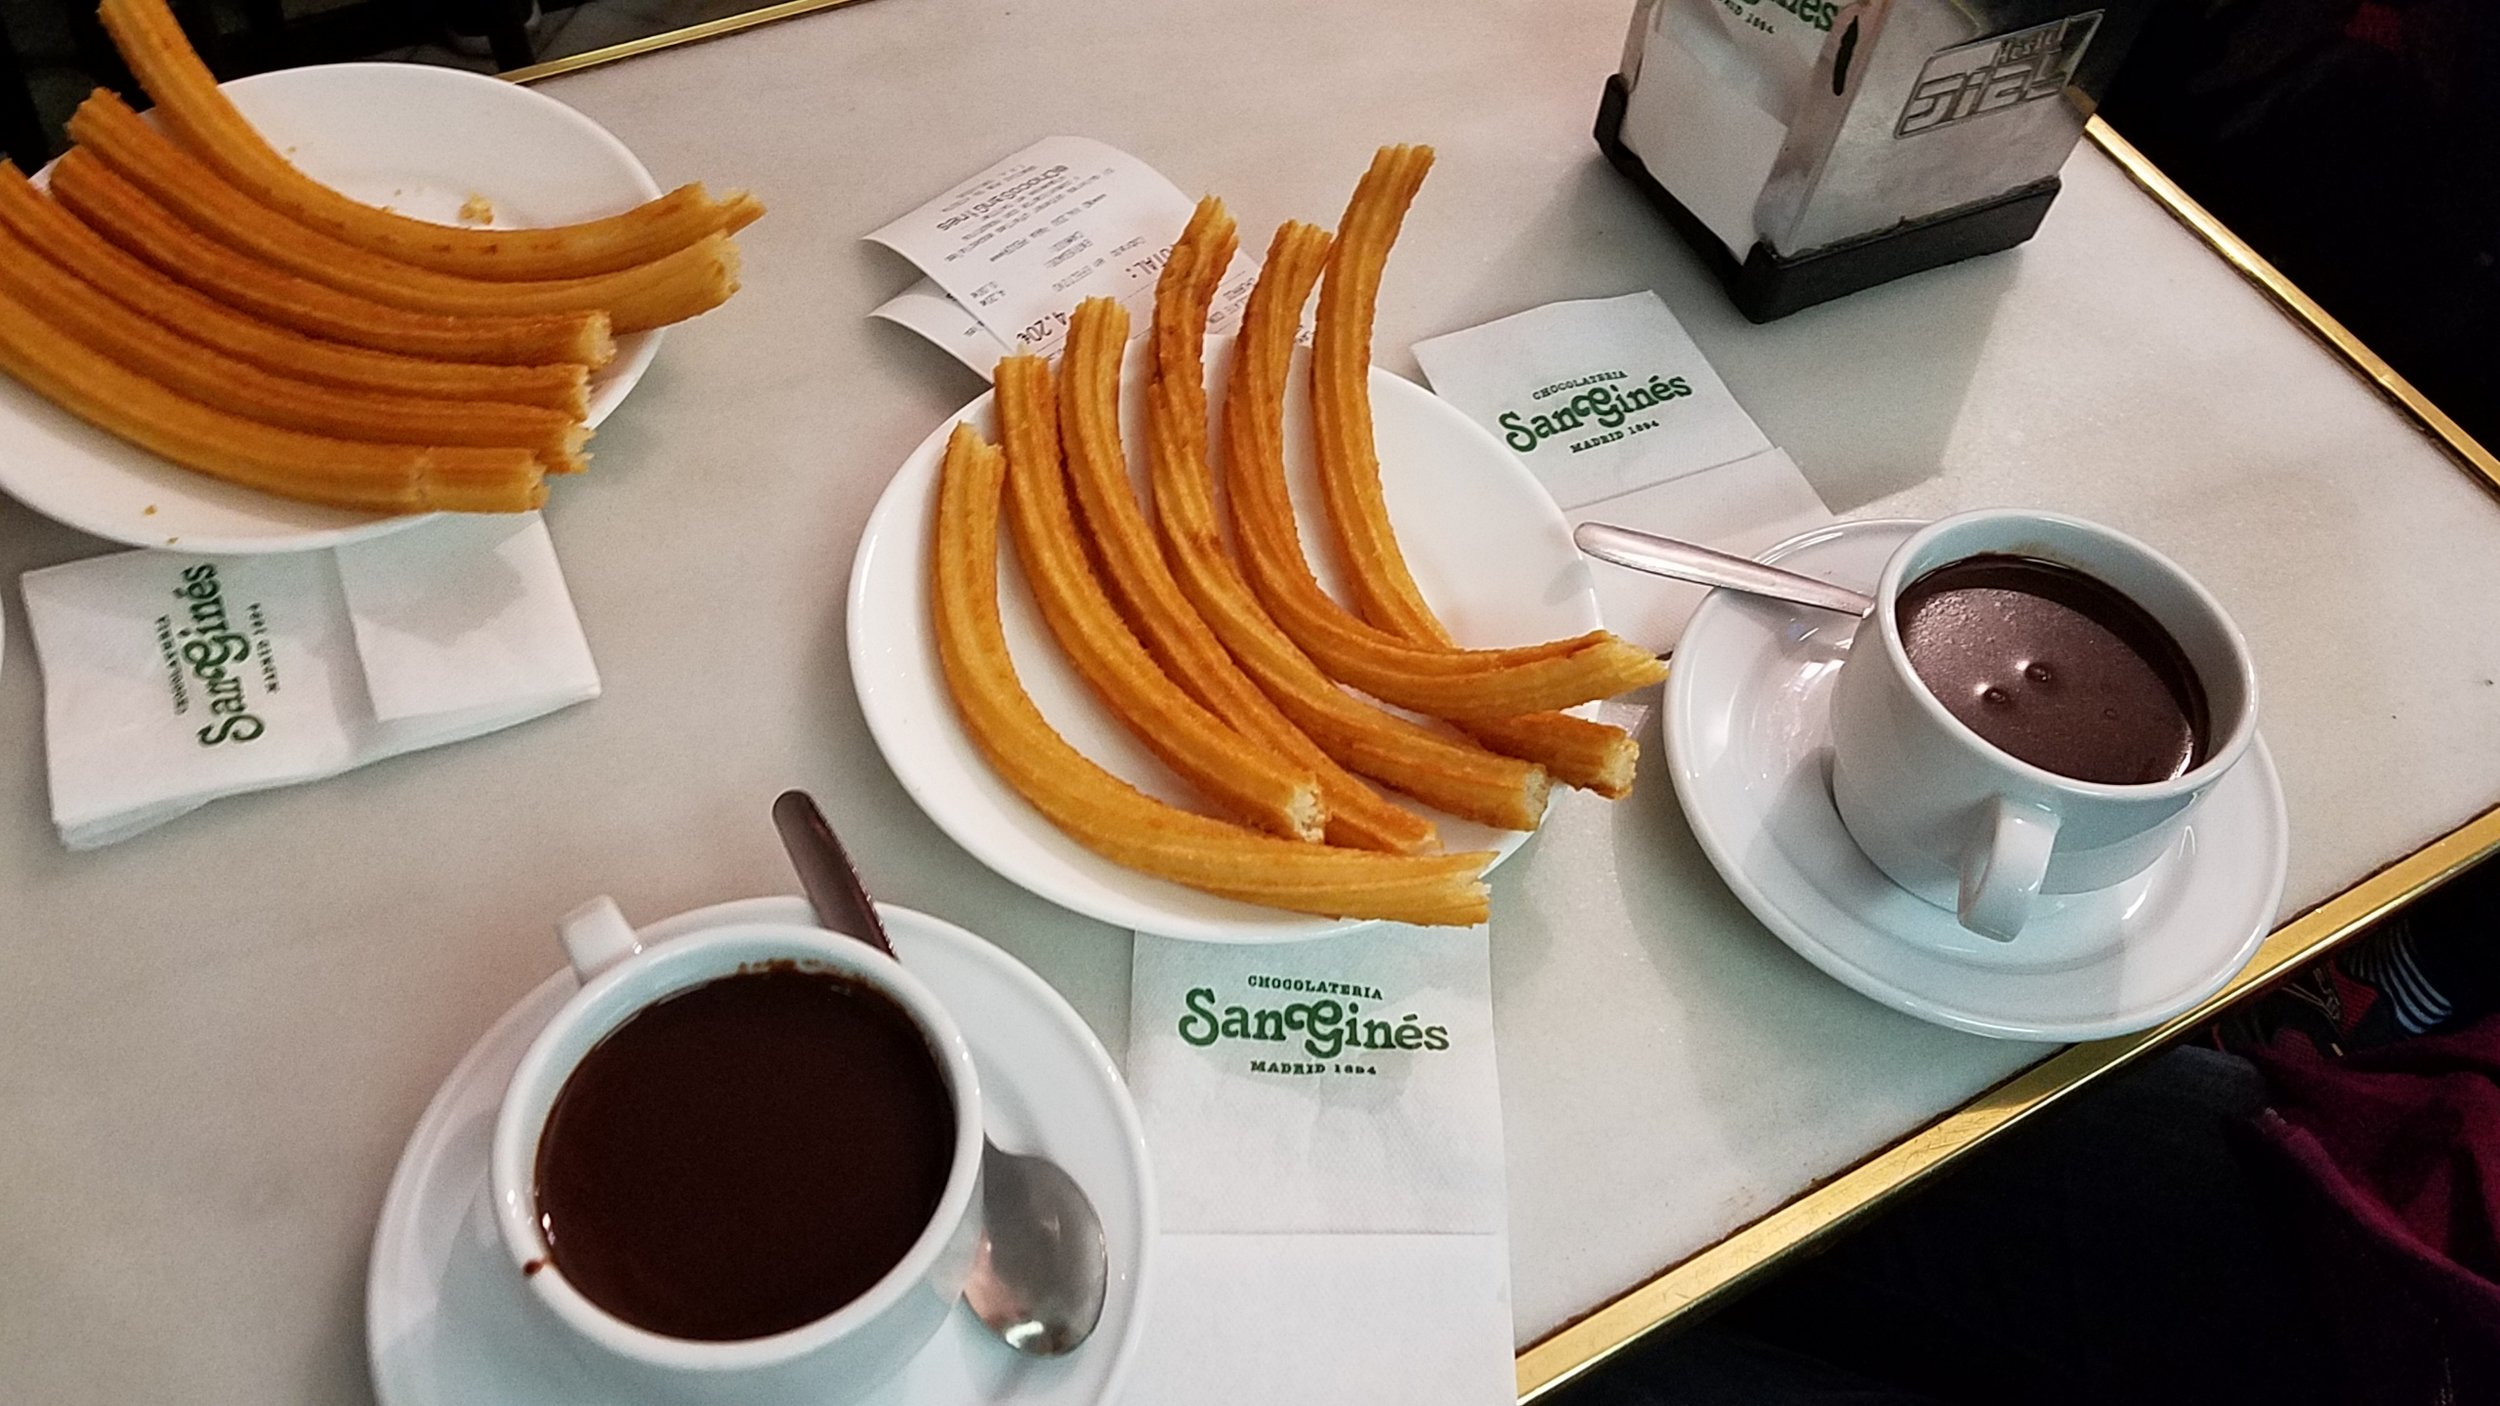 Churros con chocolate at Chocolatería San Ginés, considered to be one of the best in Madrid.